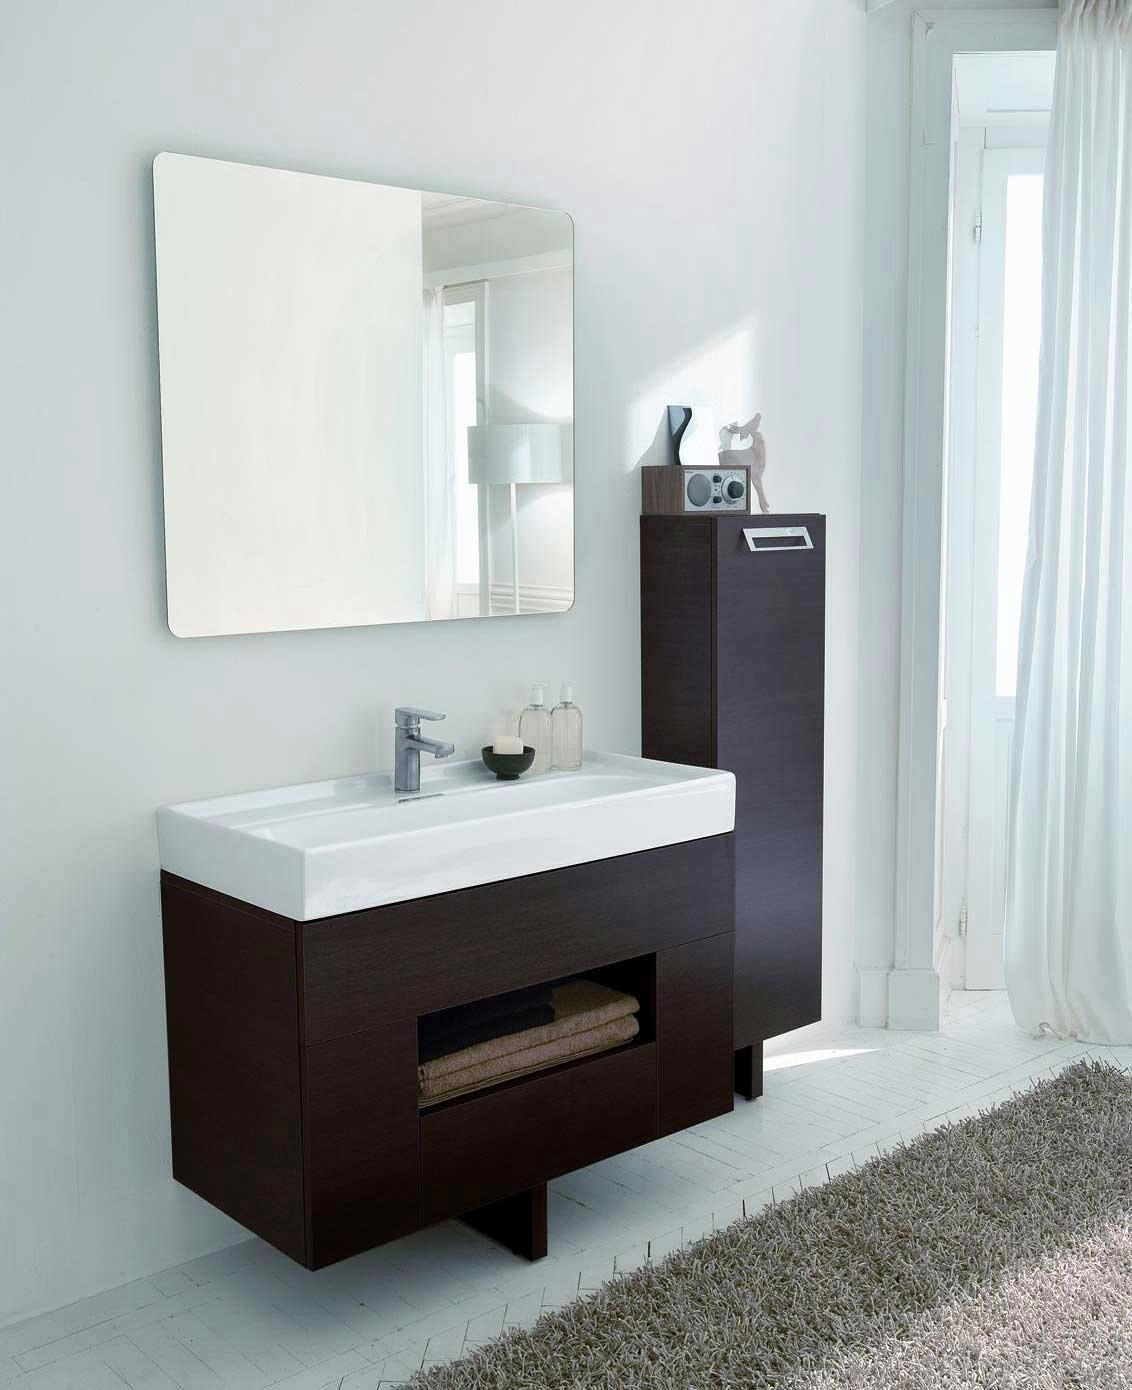 vanities vanity ideas sconces bathroom laundry sink room houselogic double standard cabinets cabinet bath and by